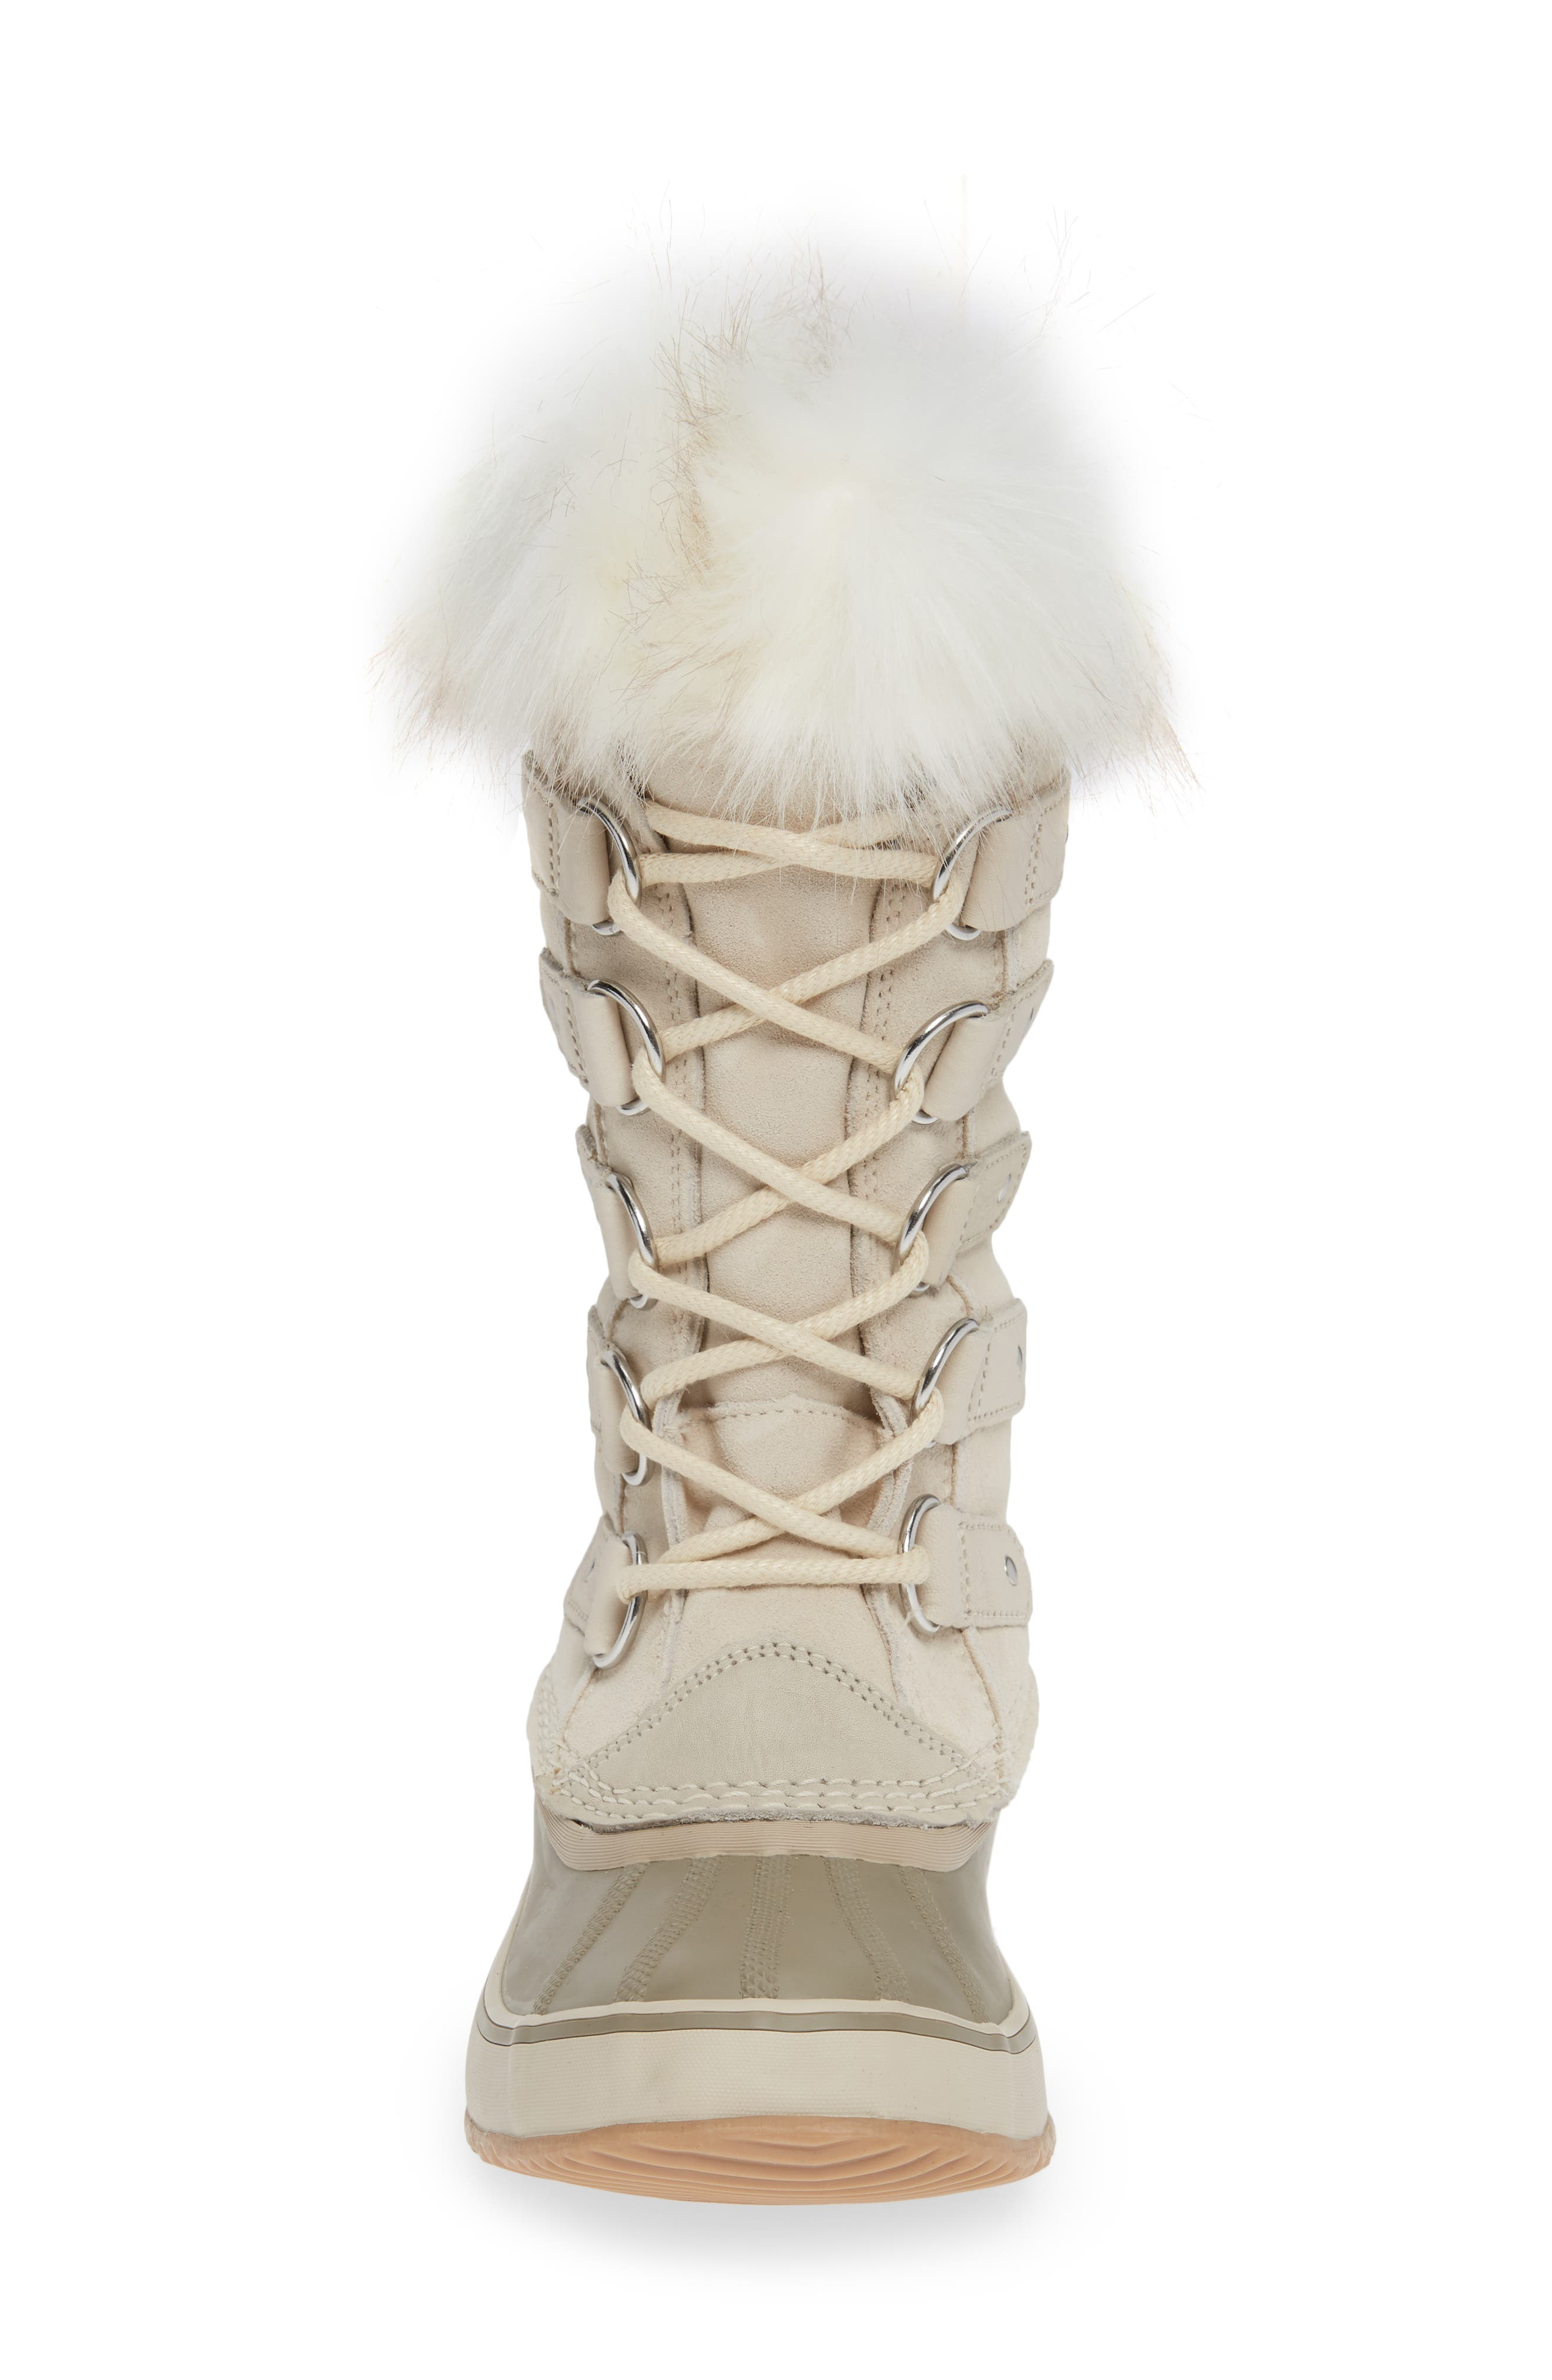 'Joan of Arctic' Waterproof Snow Boot,                             Alternate thumbnail 4, color,                             FAWN